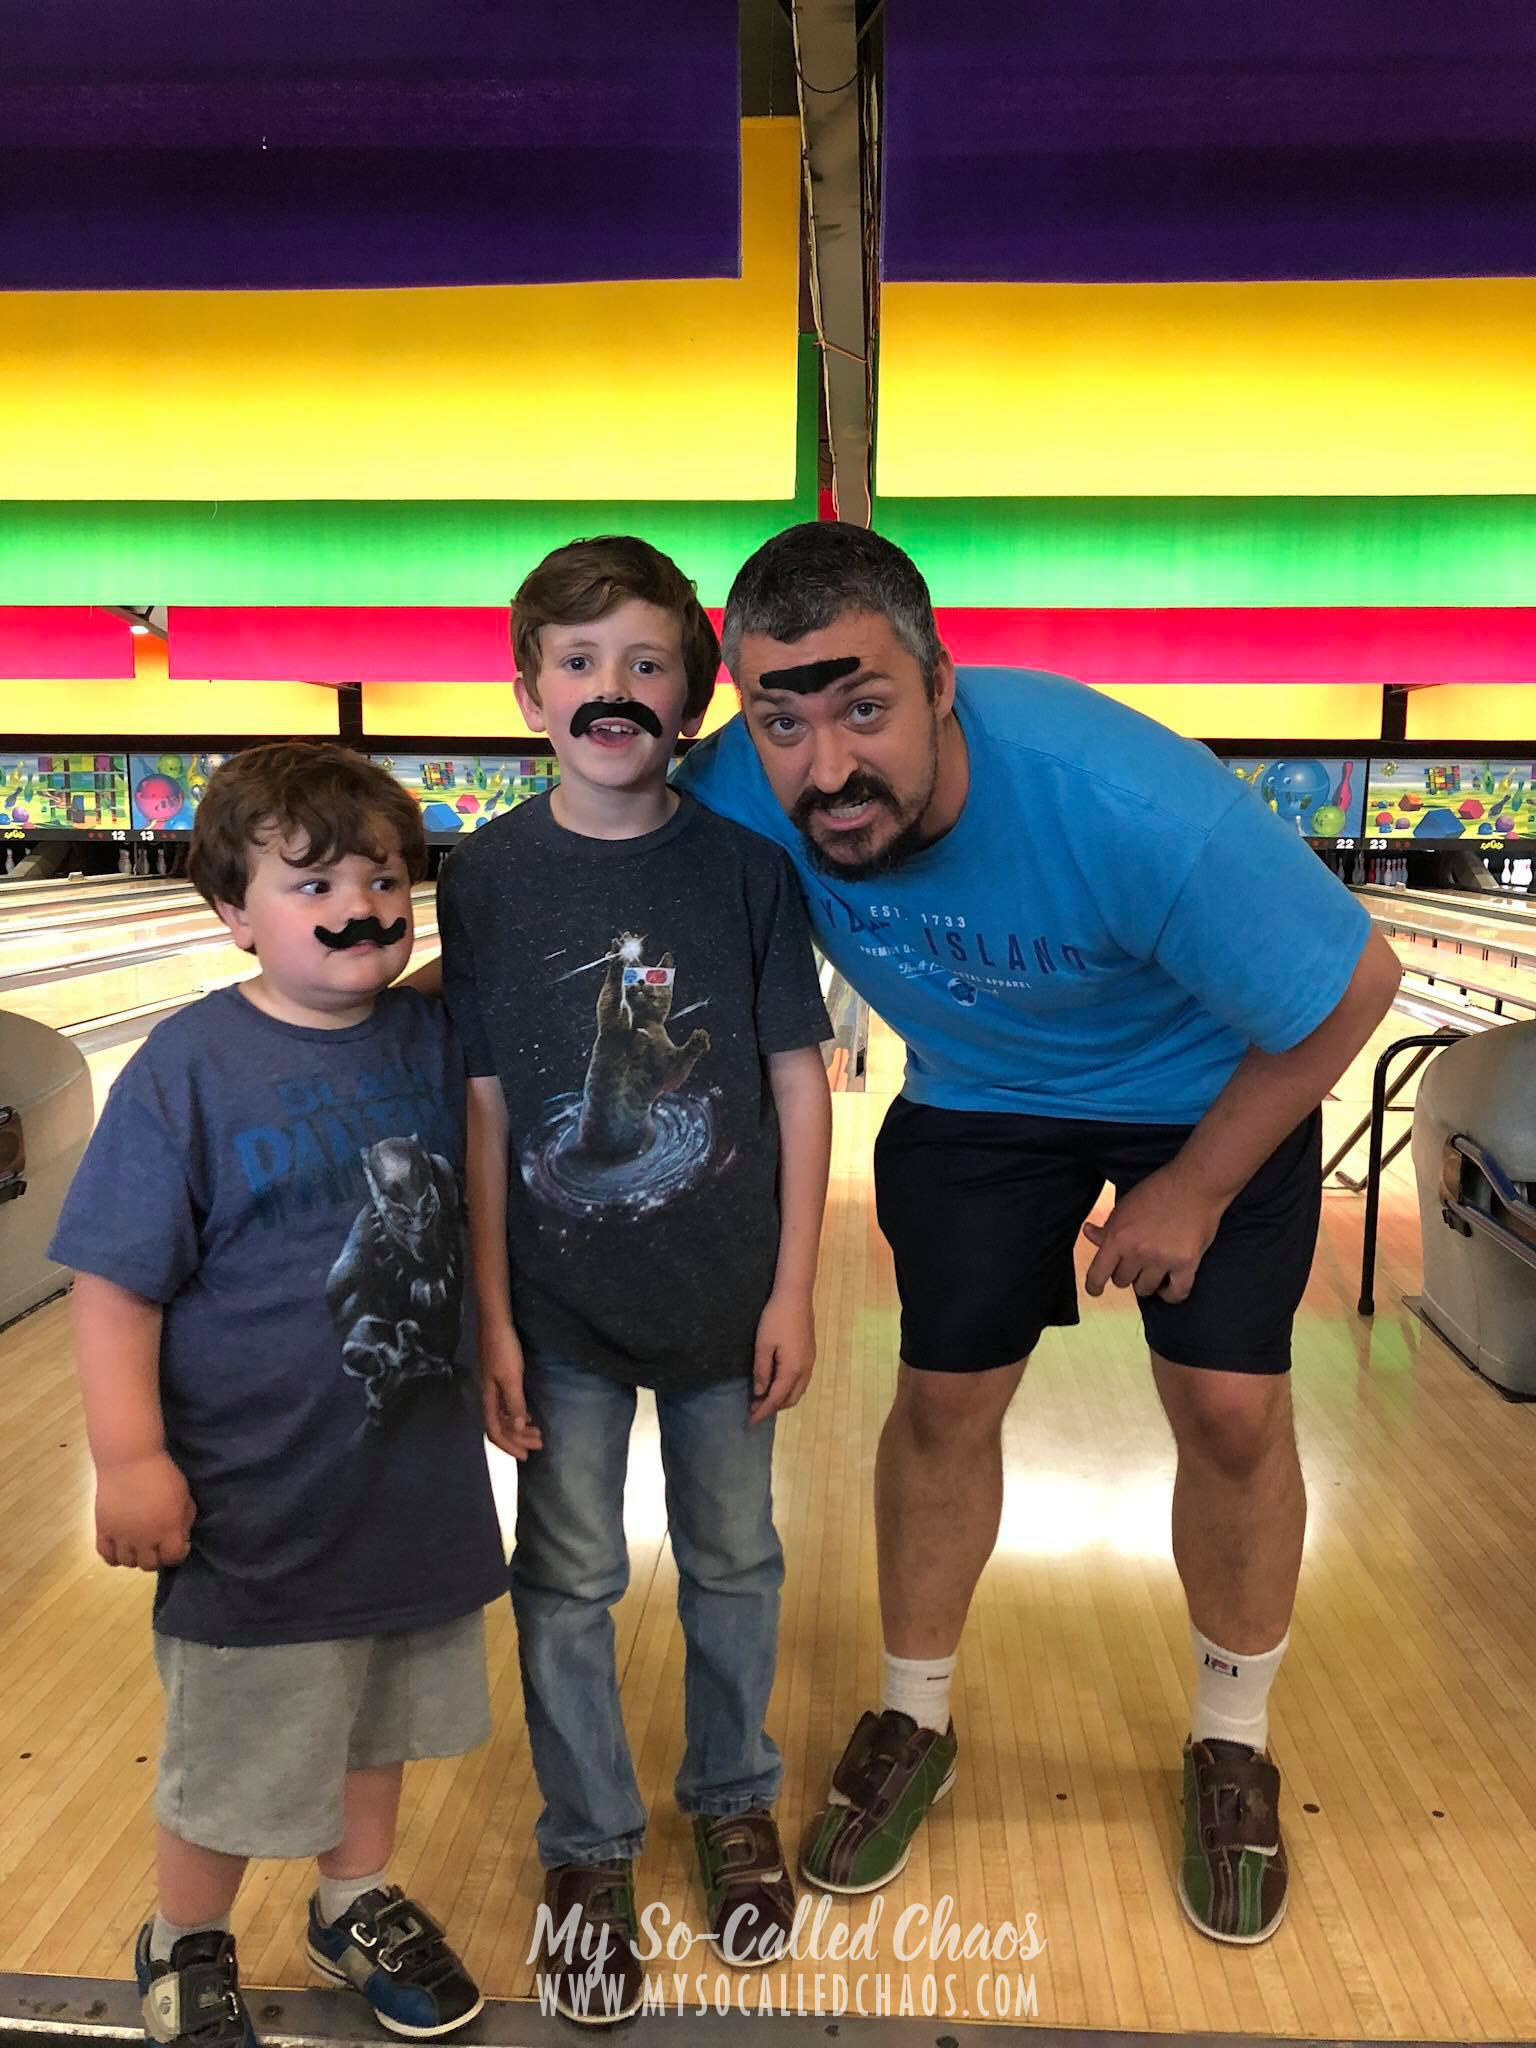 Man and two boys wearing fake mustaches at Fat Cats Bowling in Salt Lake City, UT